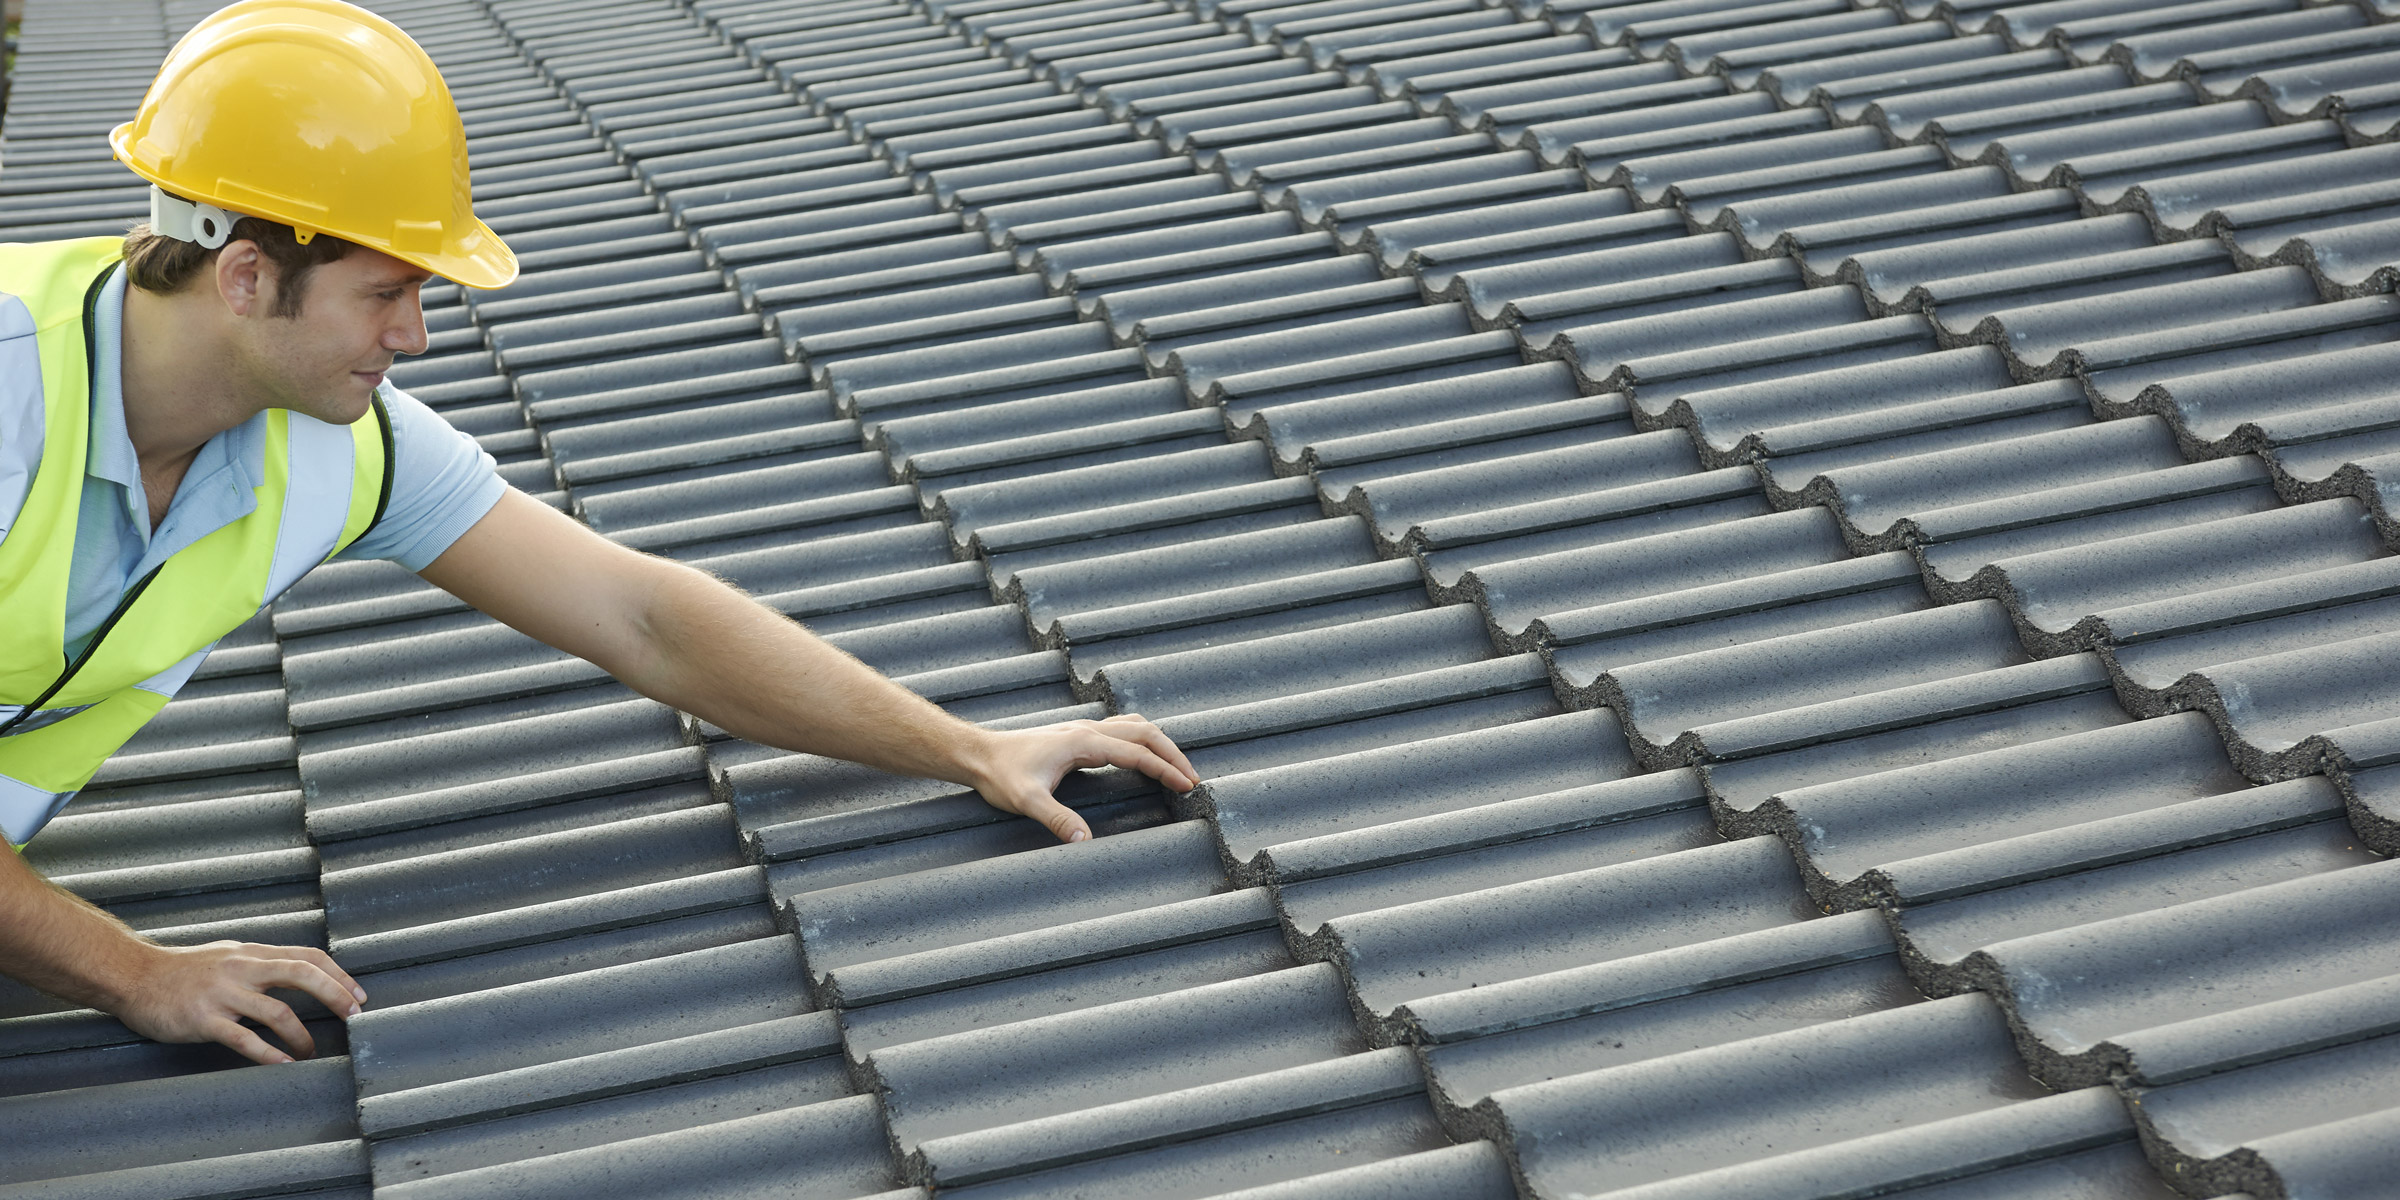 Roofers - what do they do?